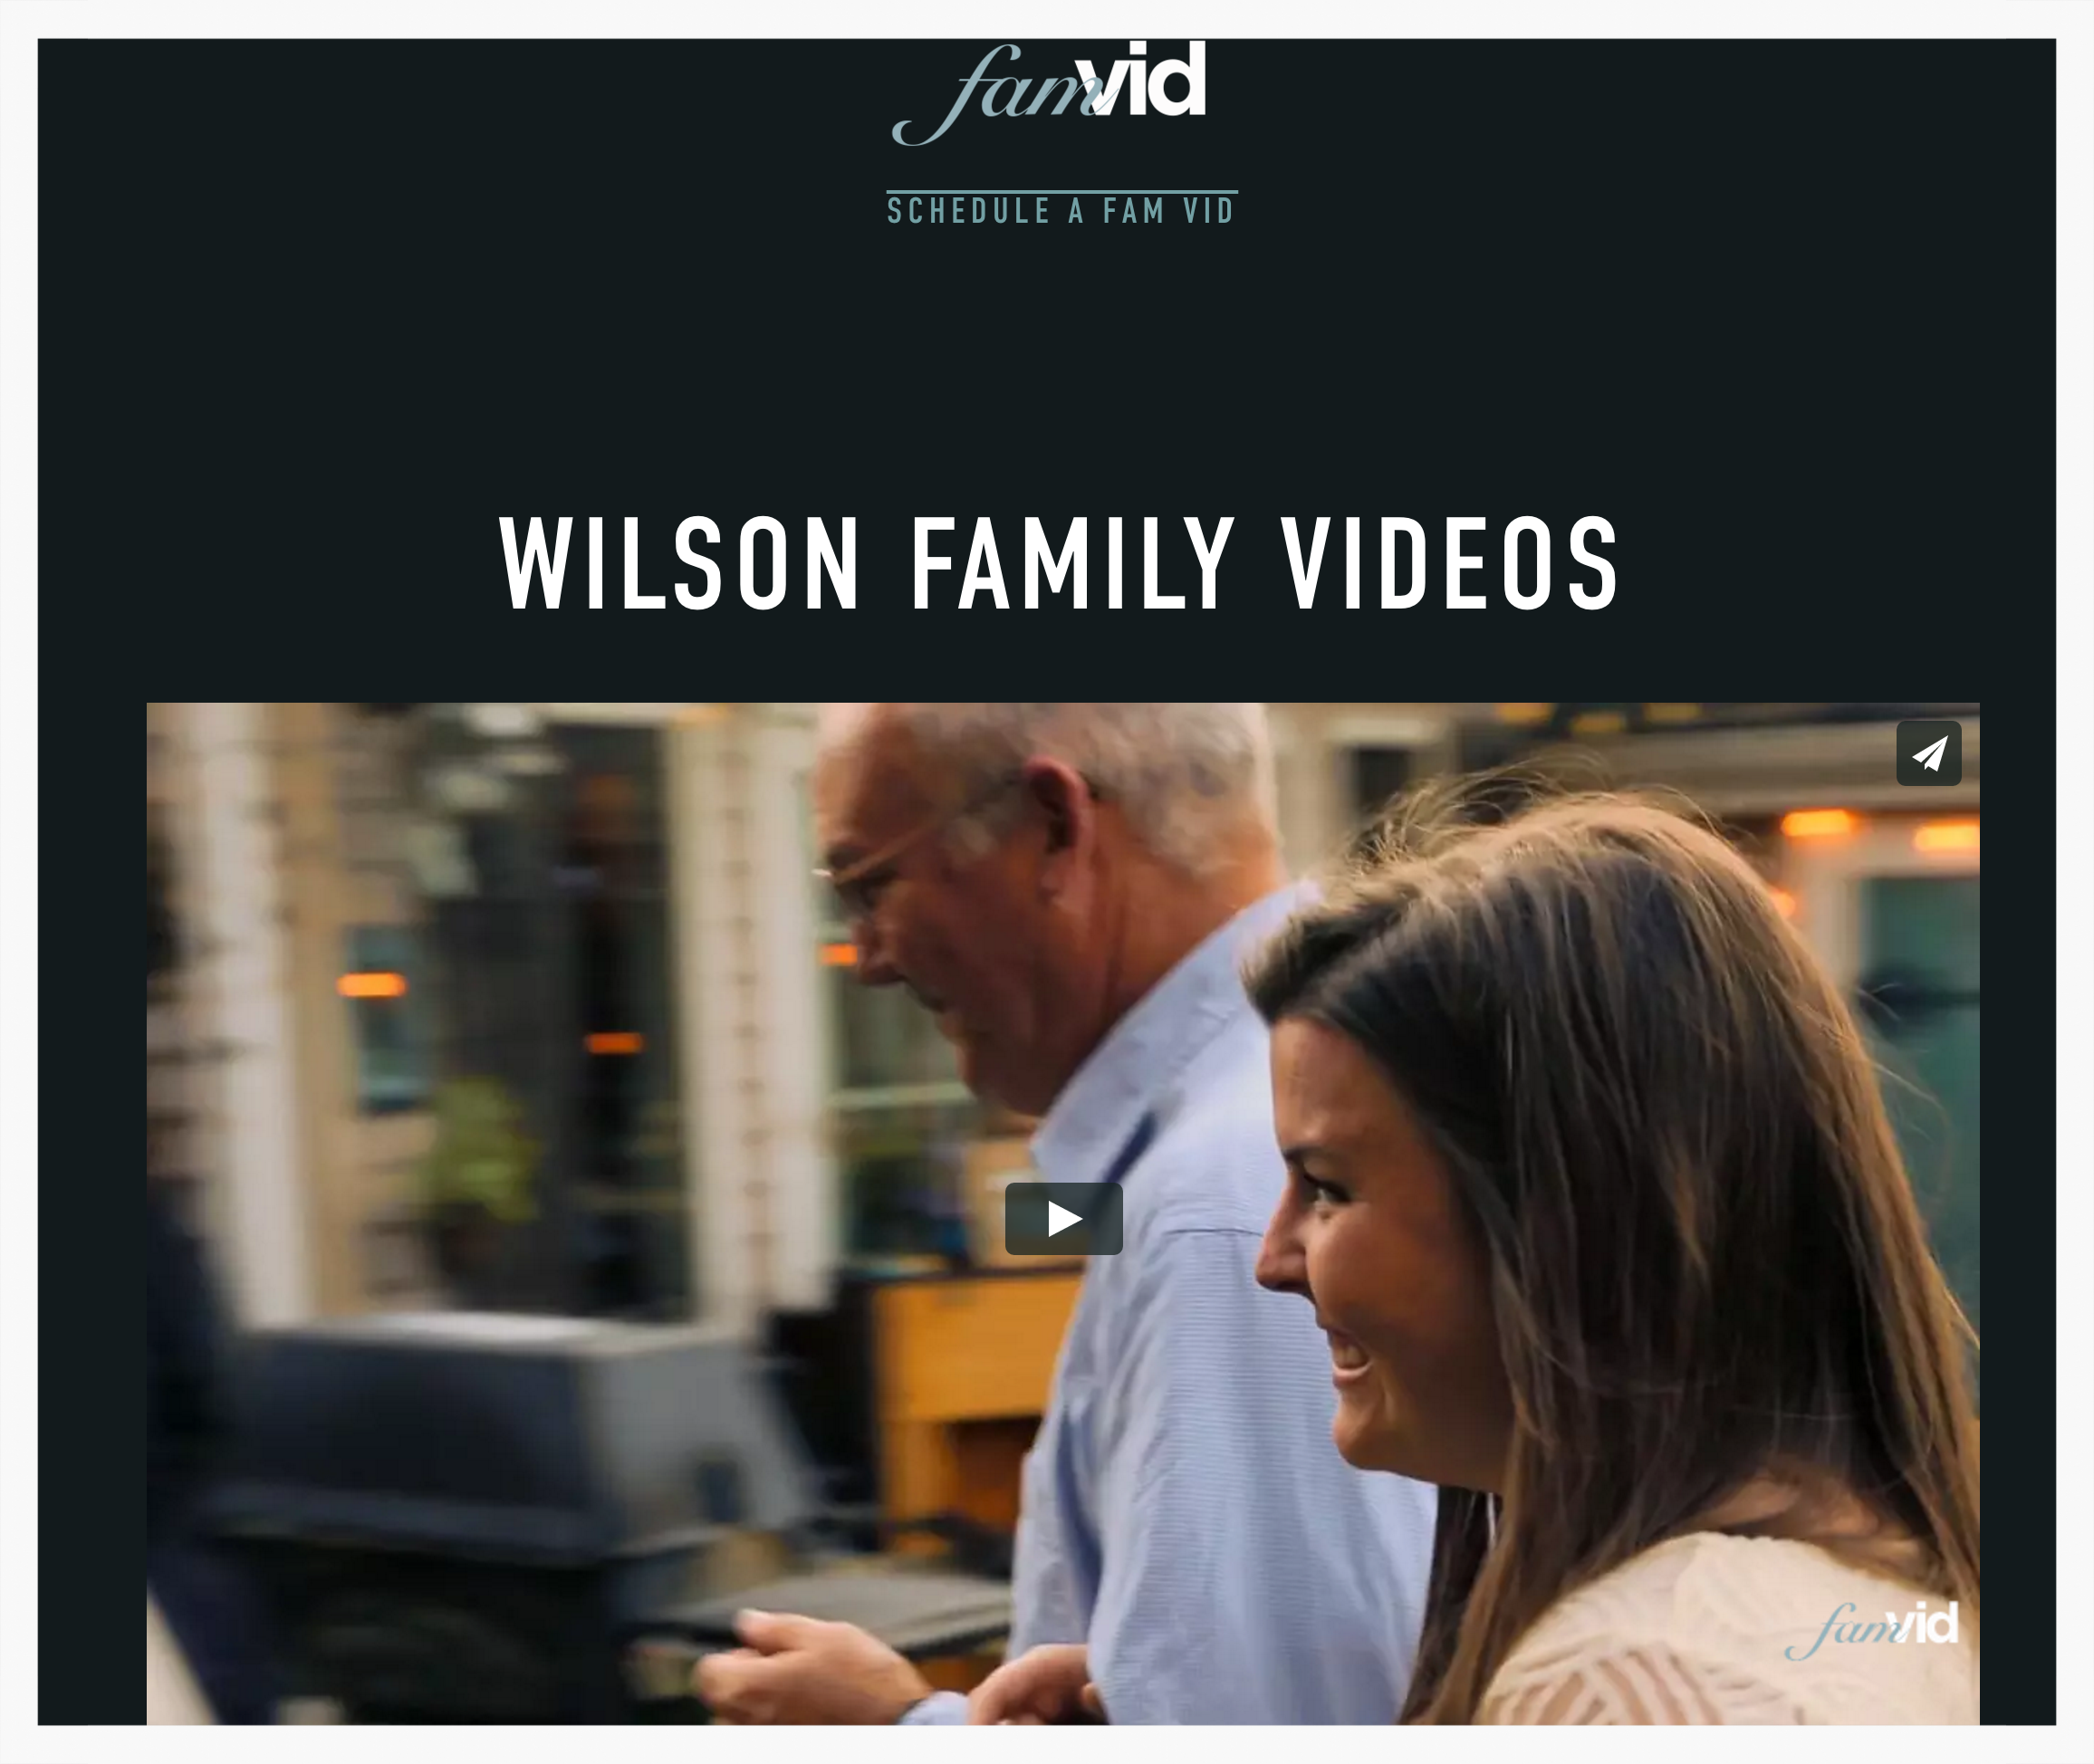 myfamvid example page